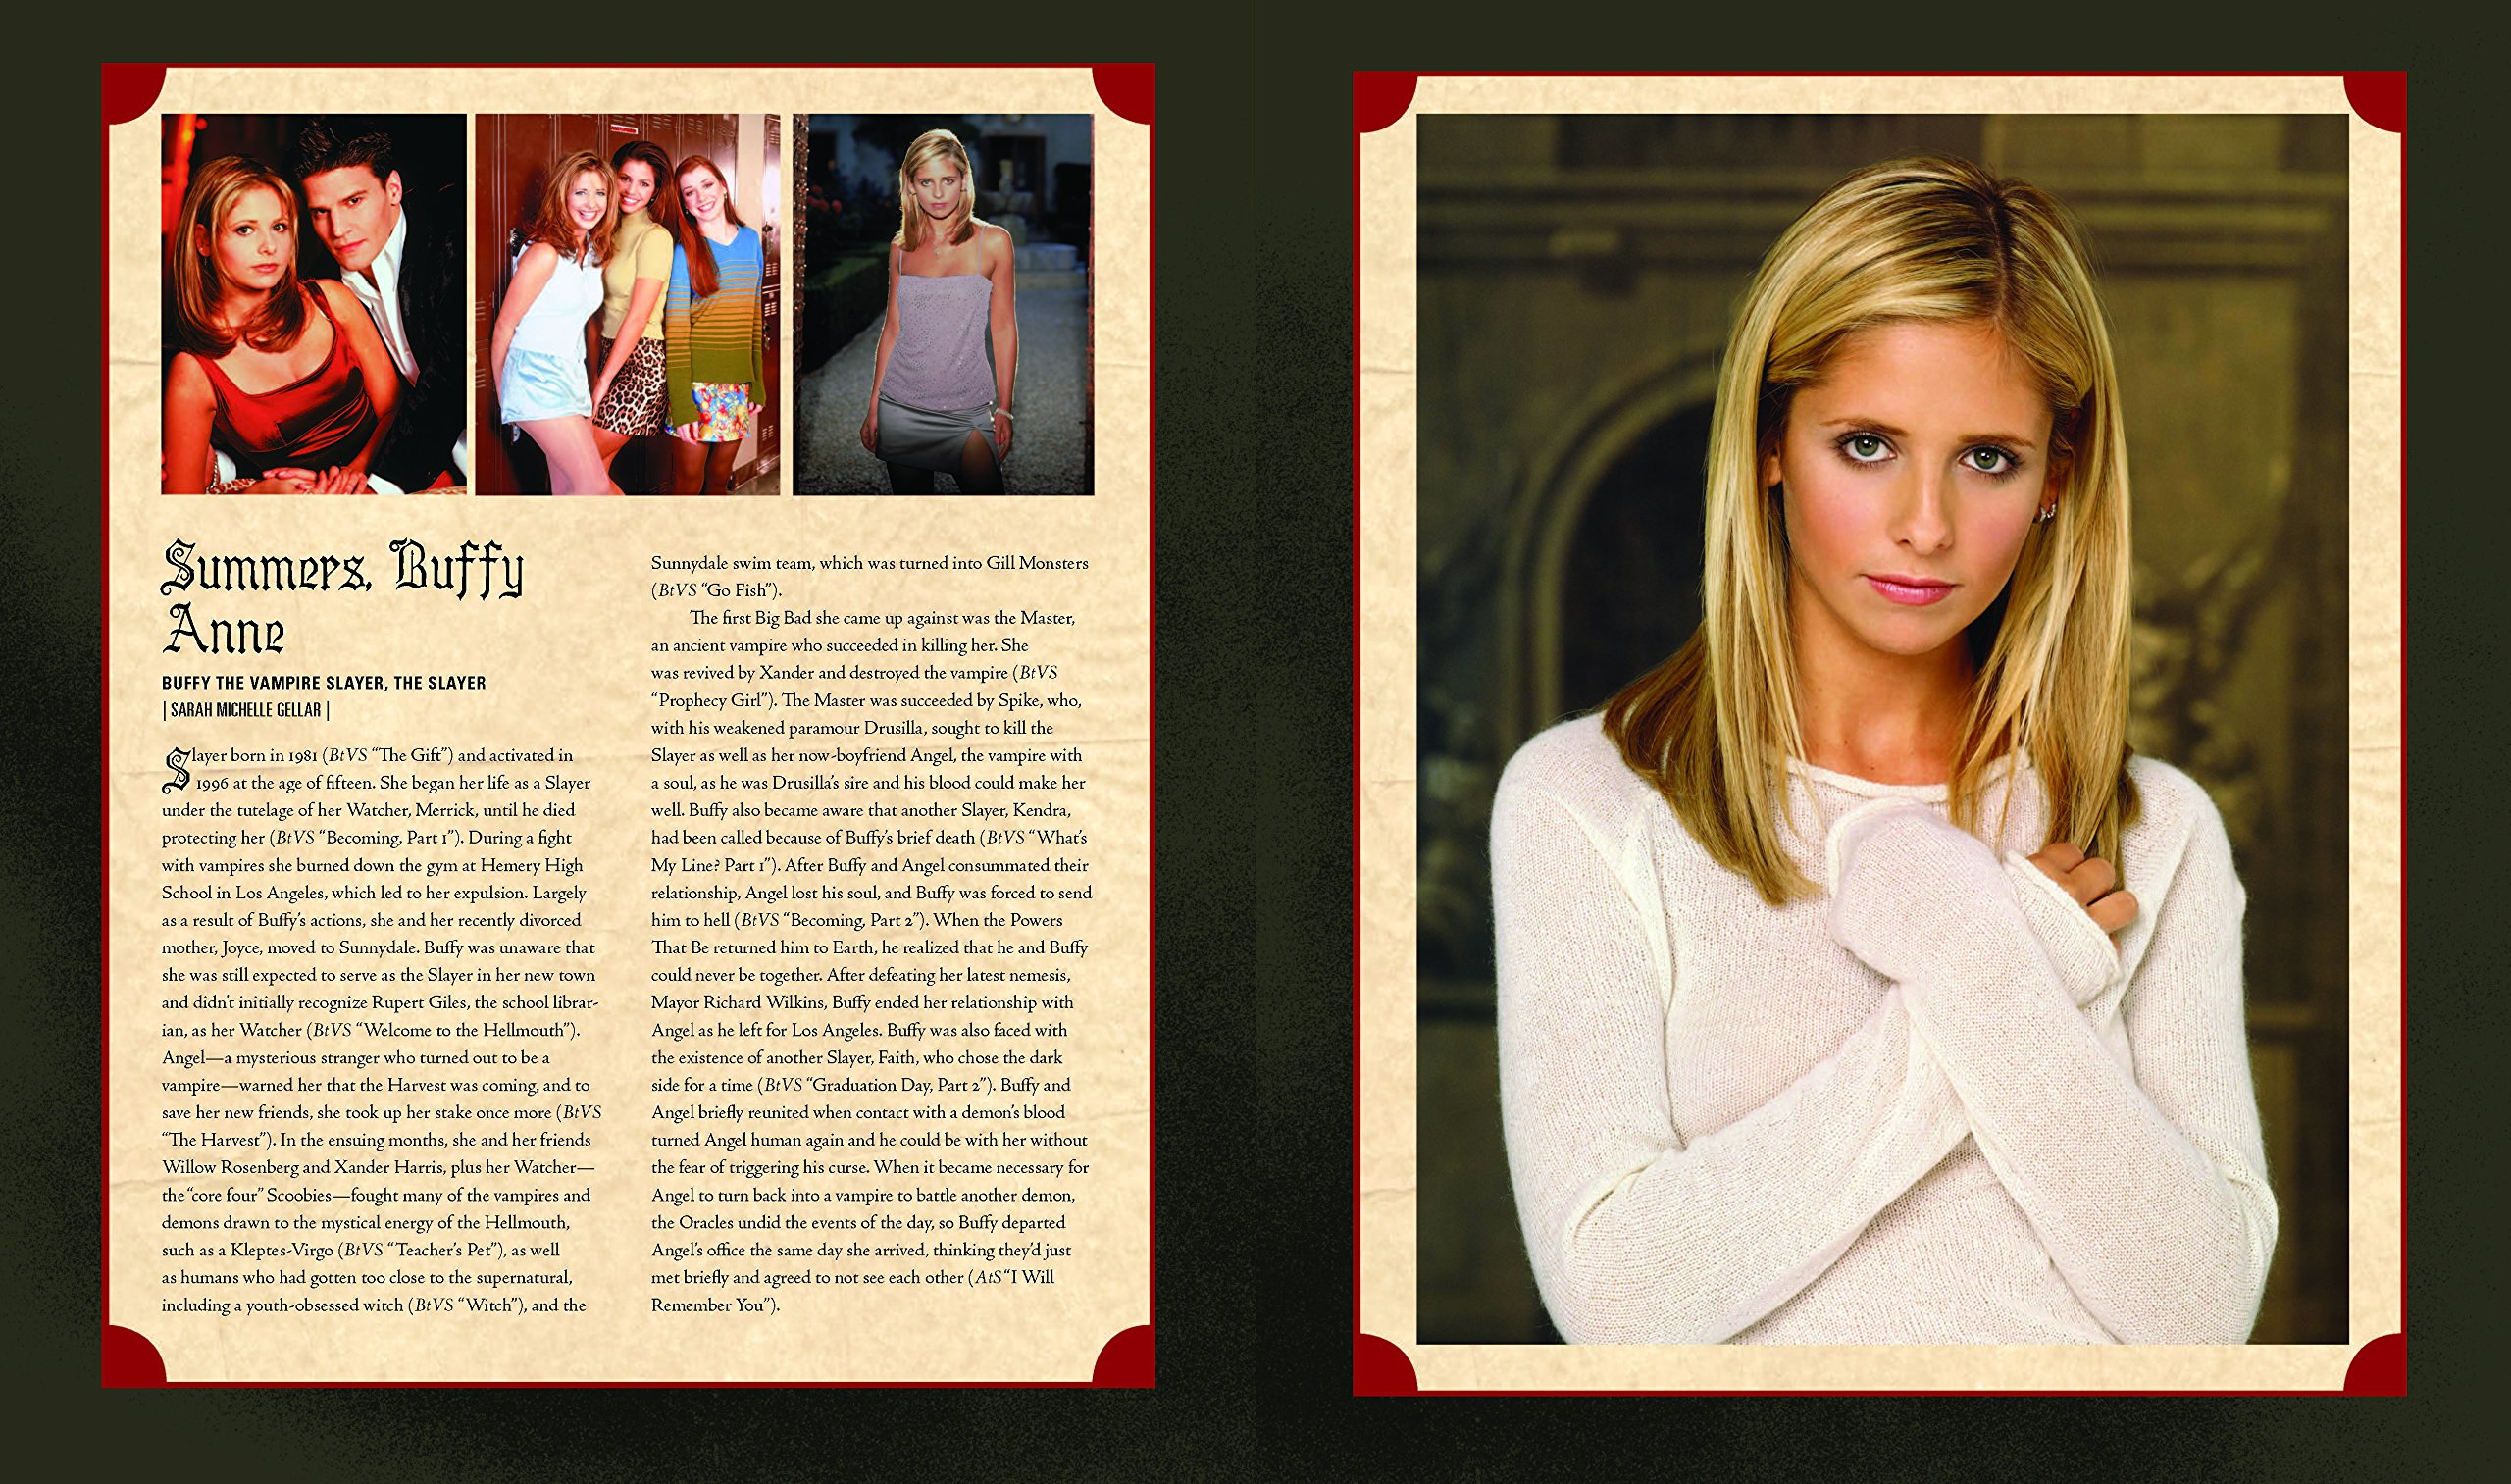 Amazon.com: Buffy the Vampire Slayer Encyclopedia: The Ultimate Guide to  the Buffyverse (9780062659668): Nancy Holder, Lisa Clancy: Books